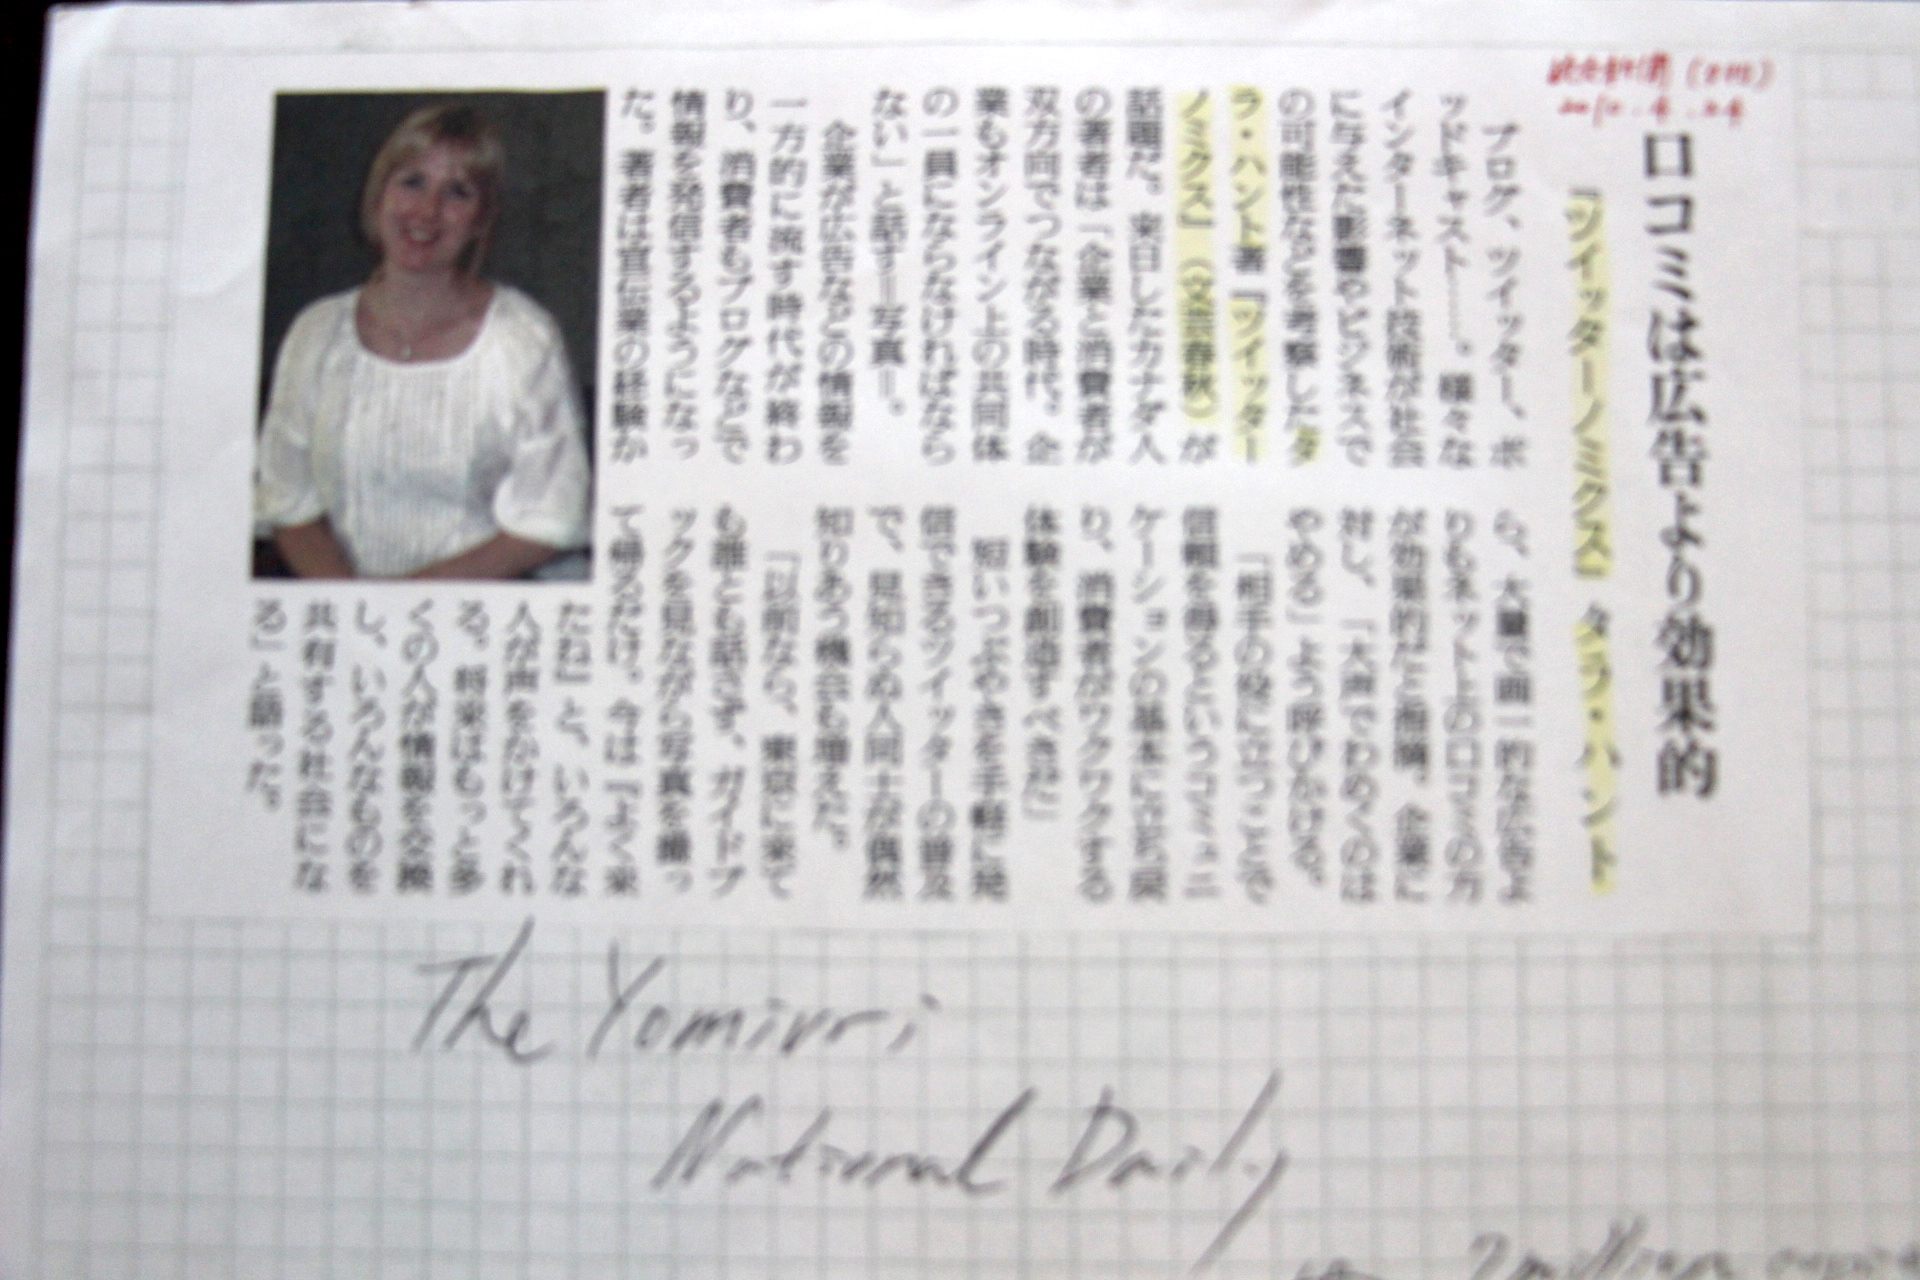 From a Japanese paper on my book launch in Japan.